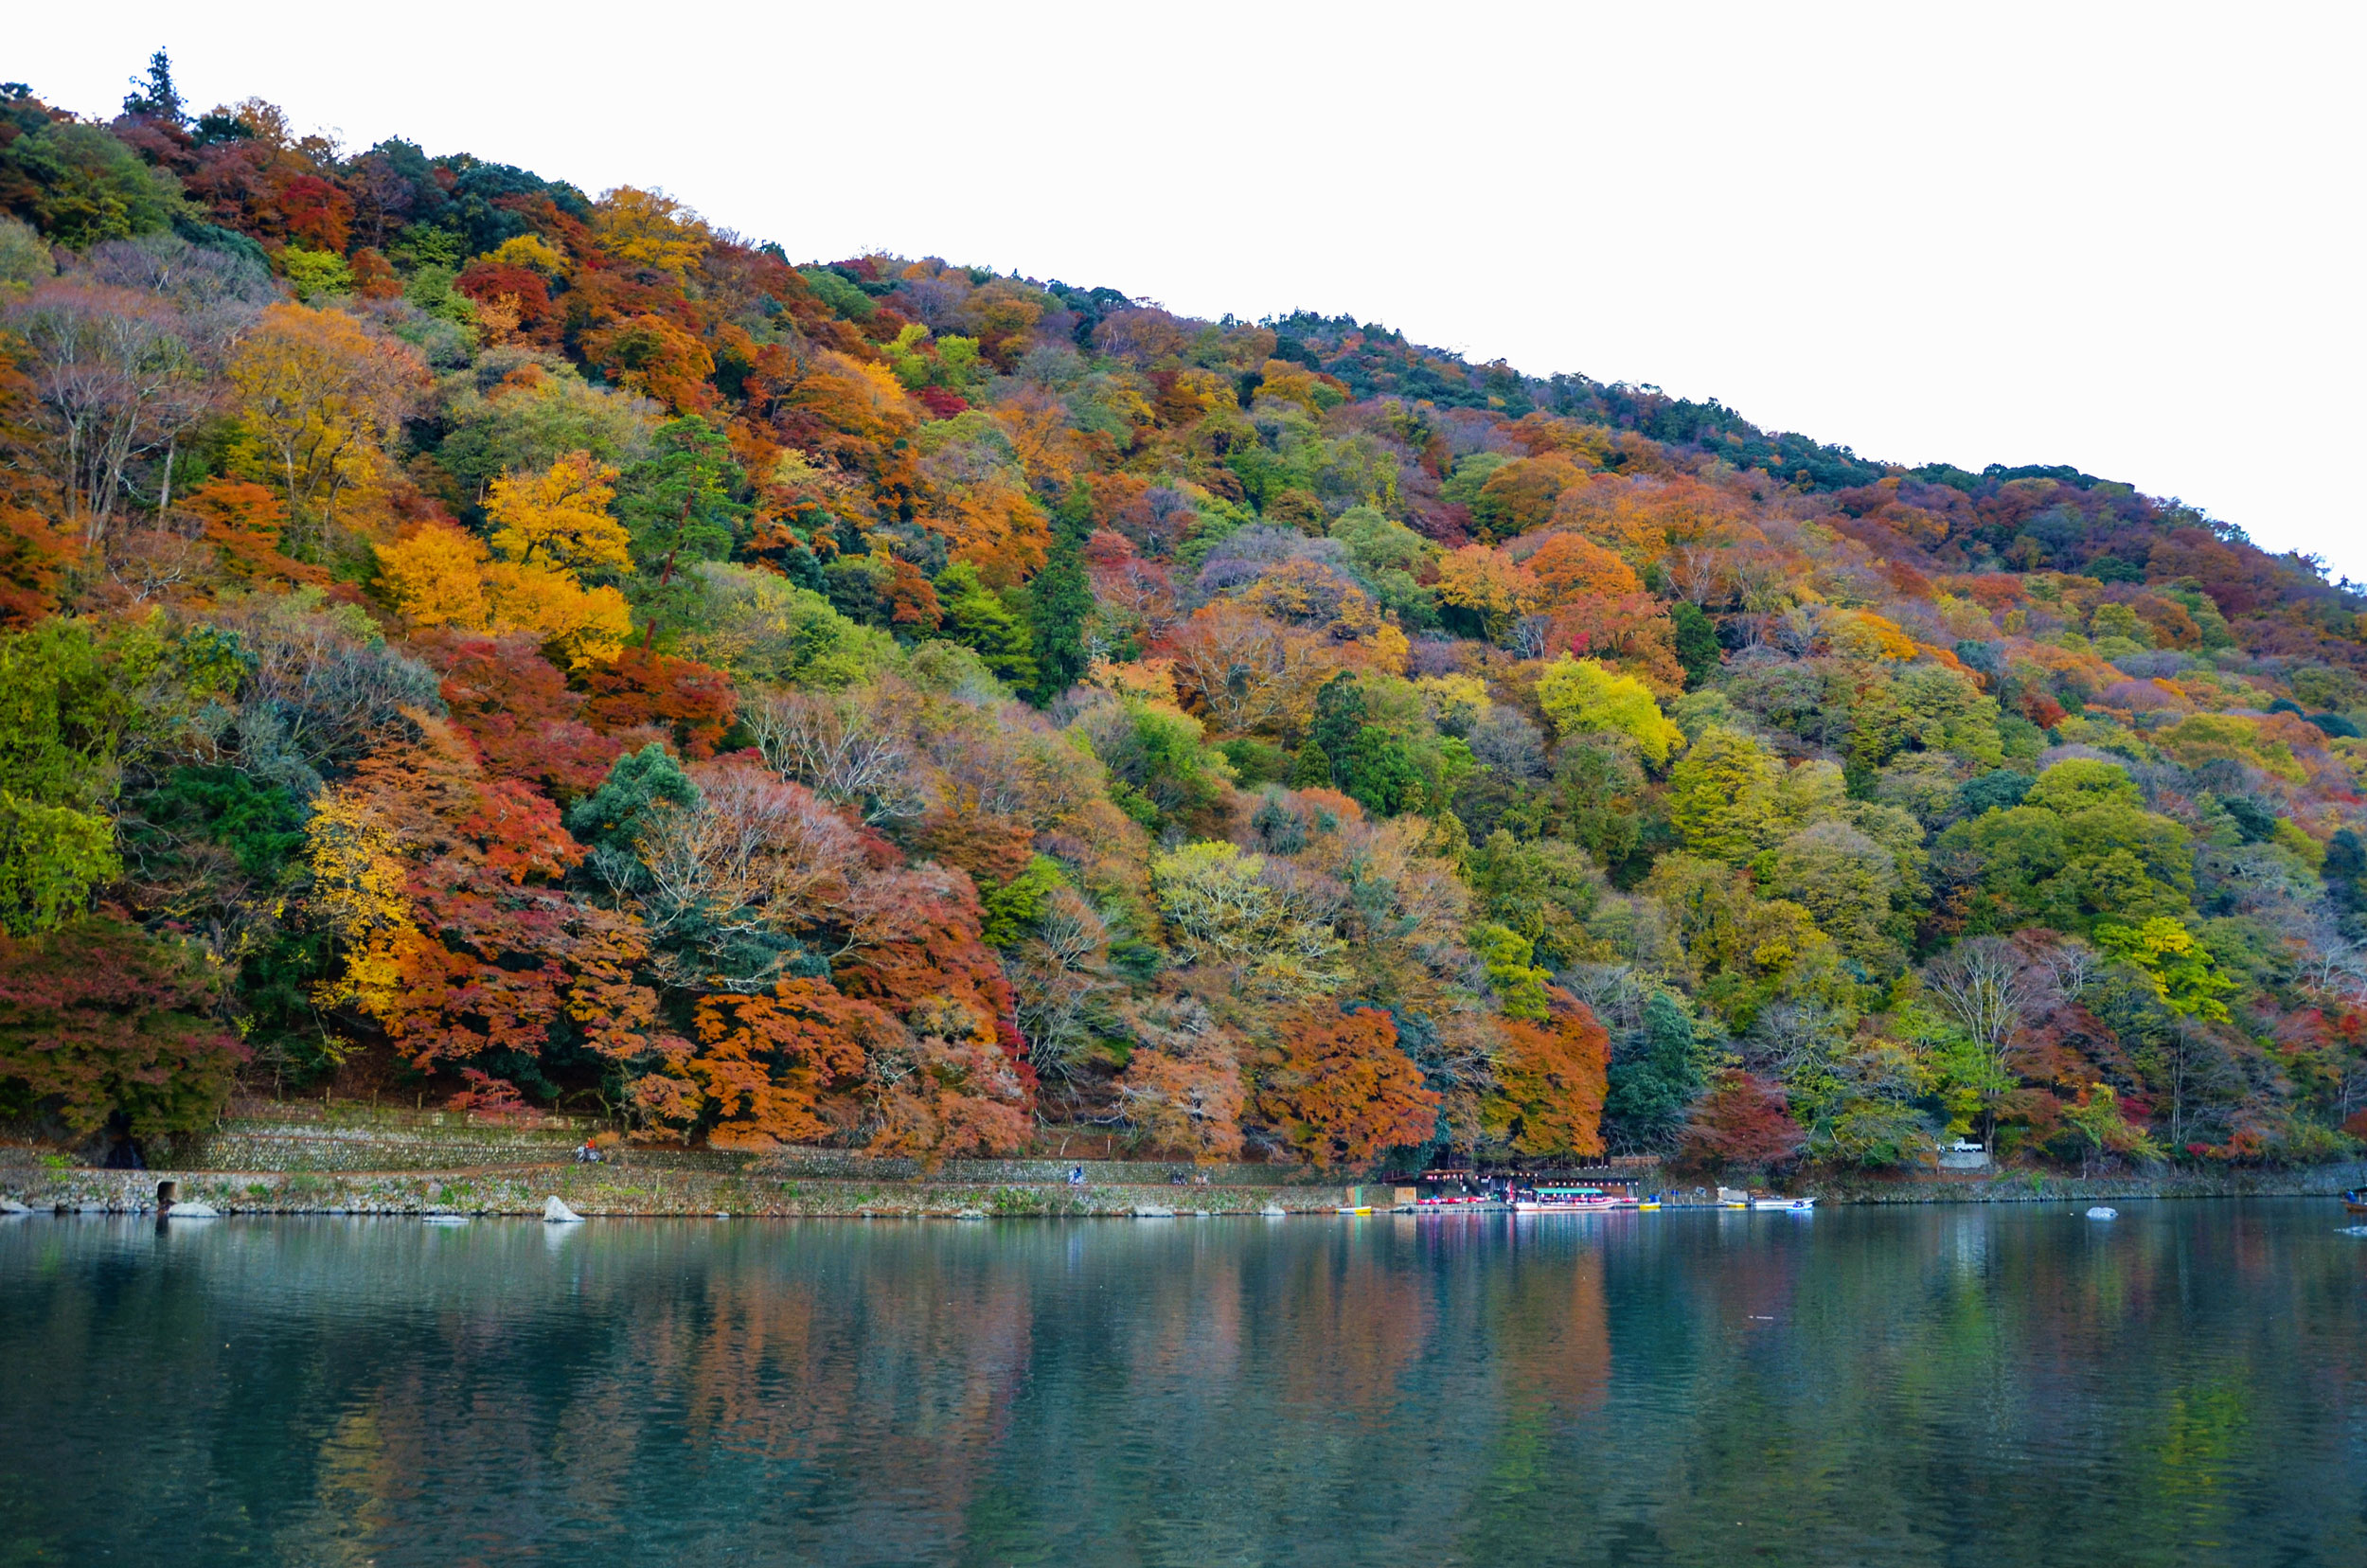 Fall leaves on the Arashiyama riverside in Kyoto